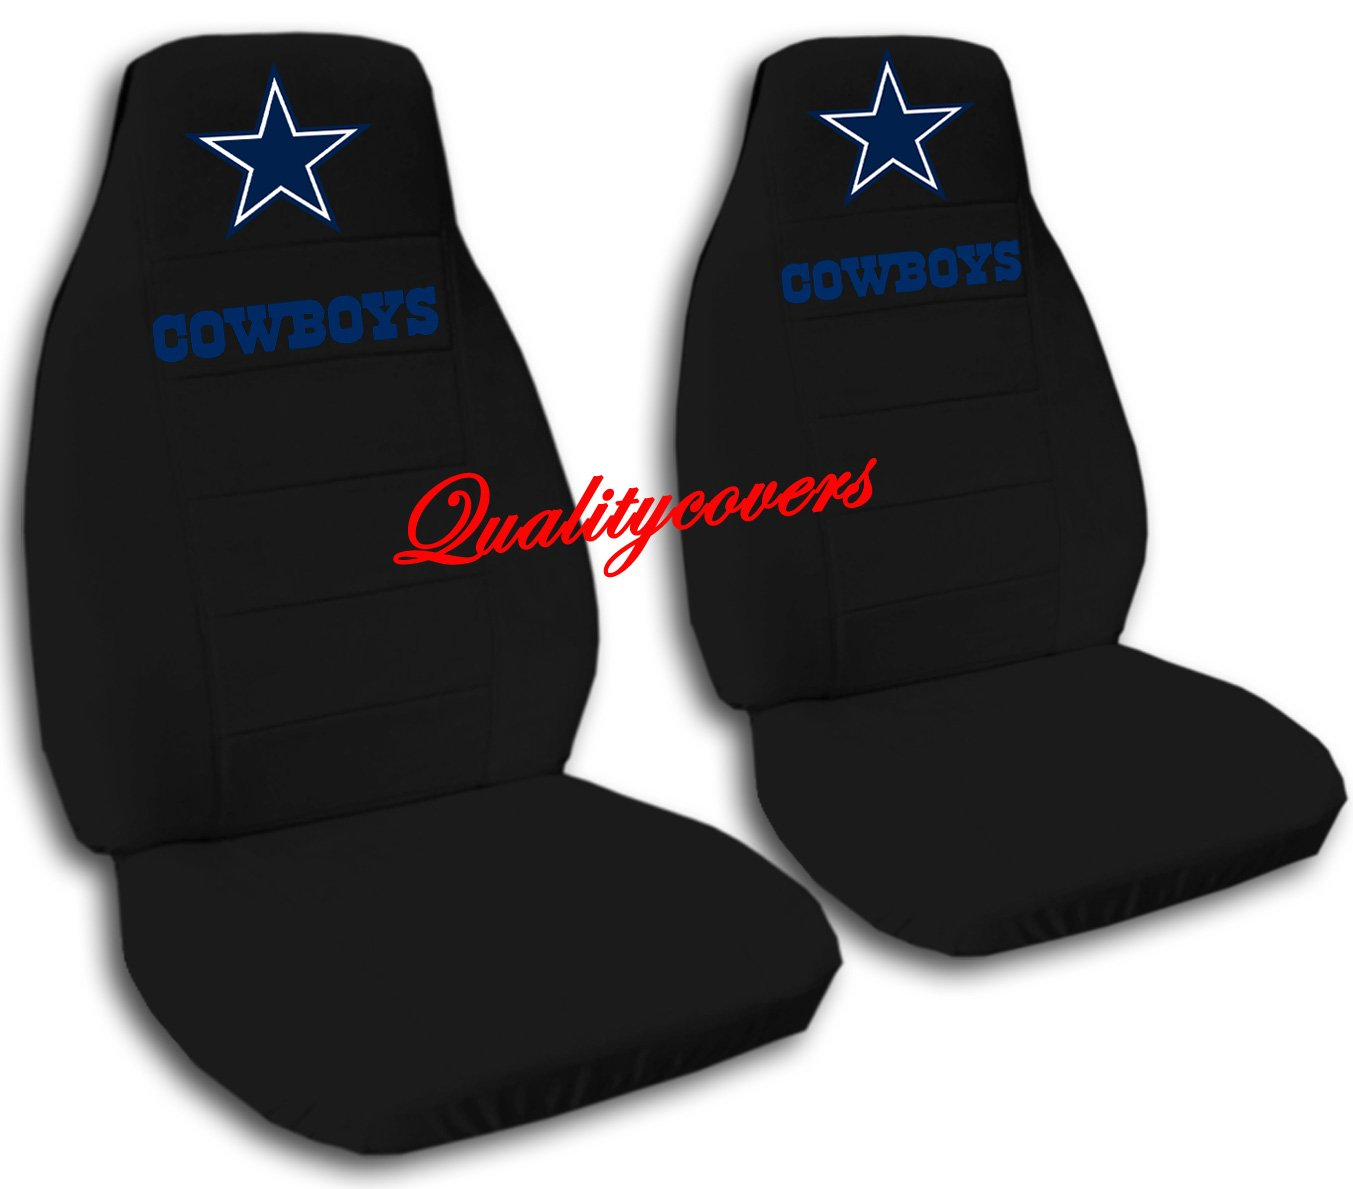 2 Black Dallas seat covers for a 2007 to 2012 Chevrolet Silverado. Side airbag friendly.